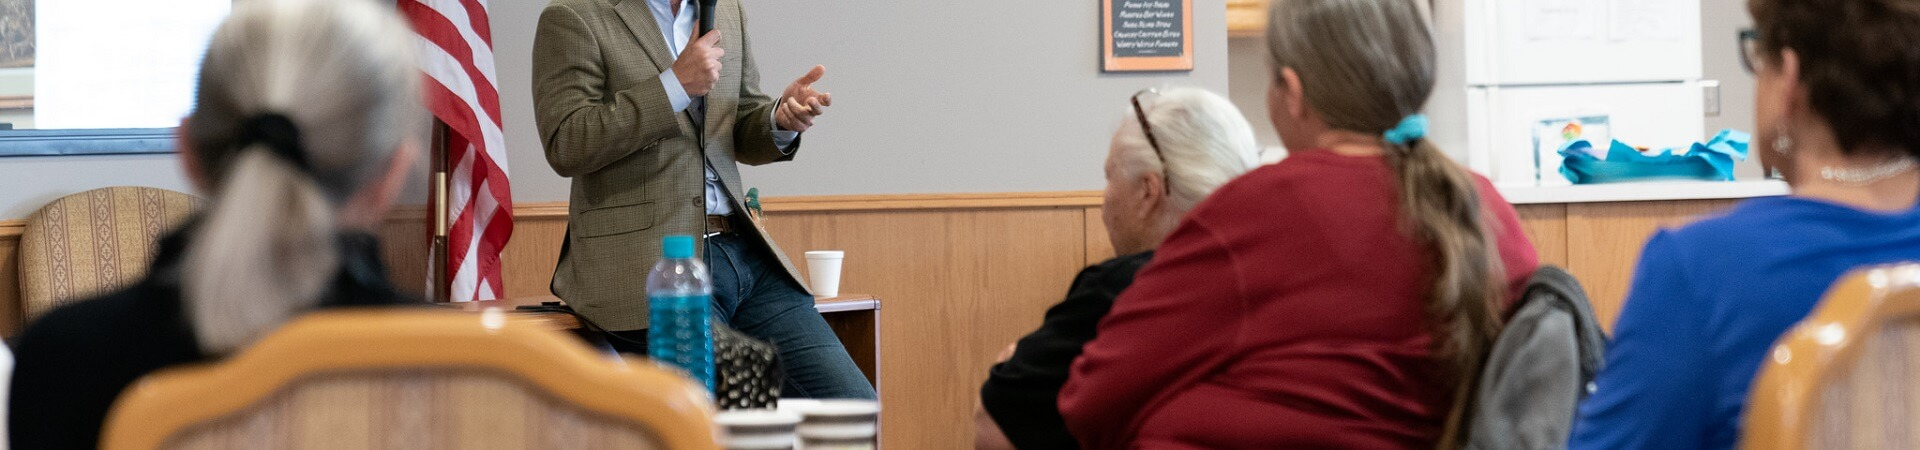 A man holding a microphone presents to a crowd of elderly people at a senior center.